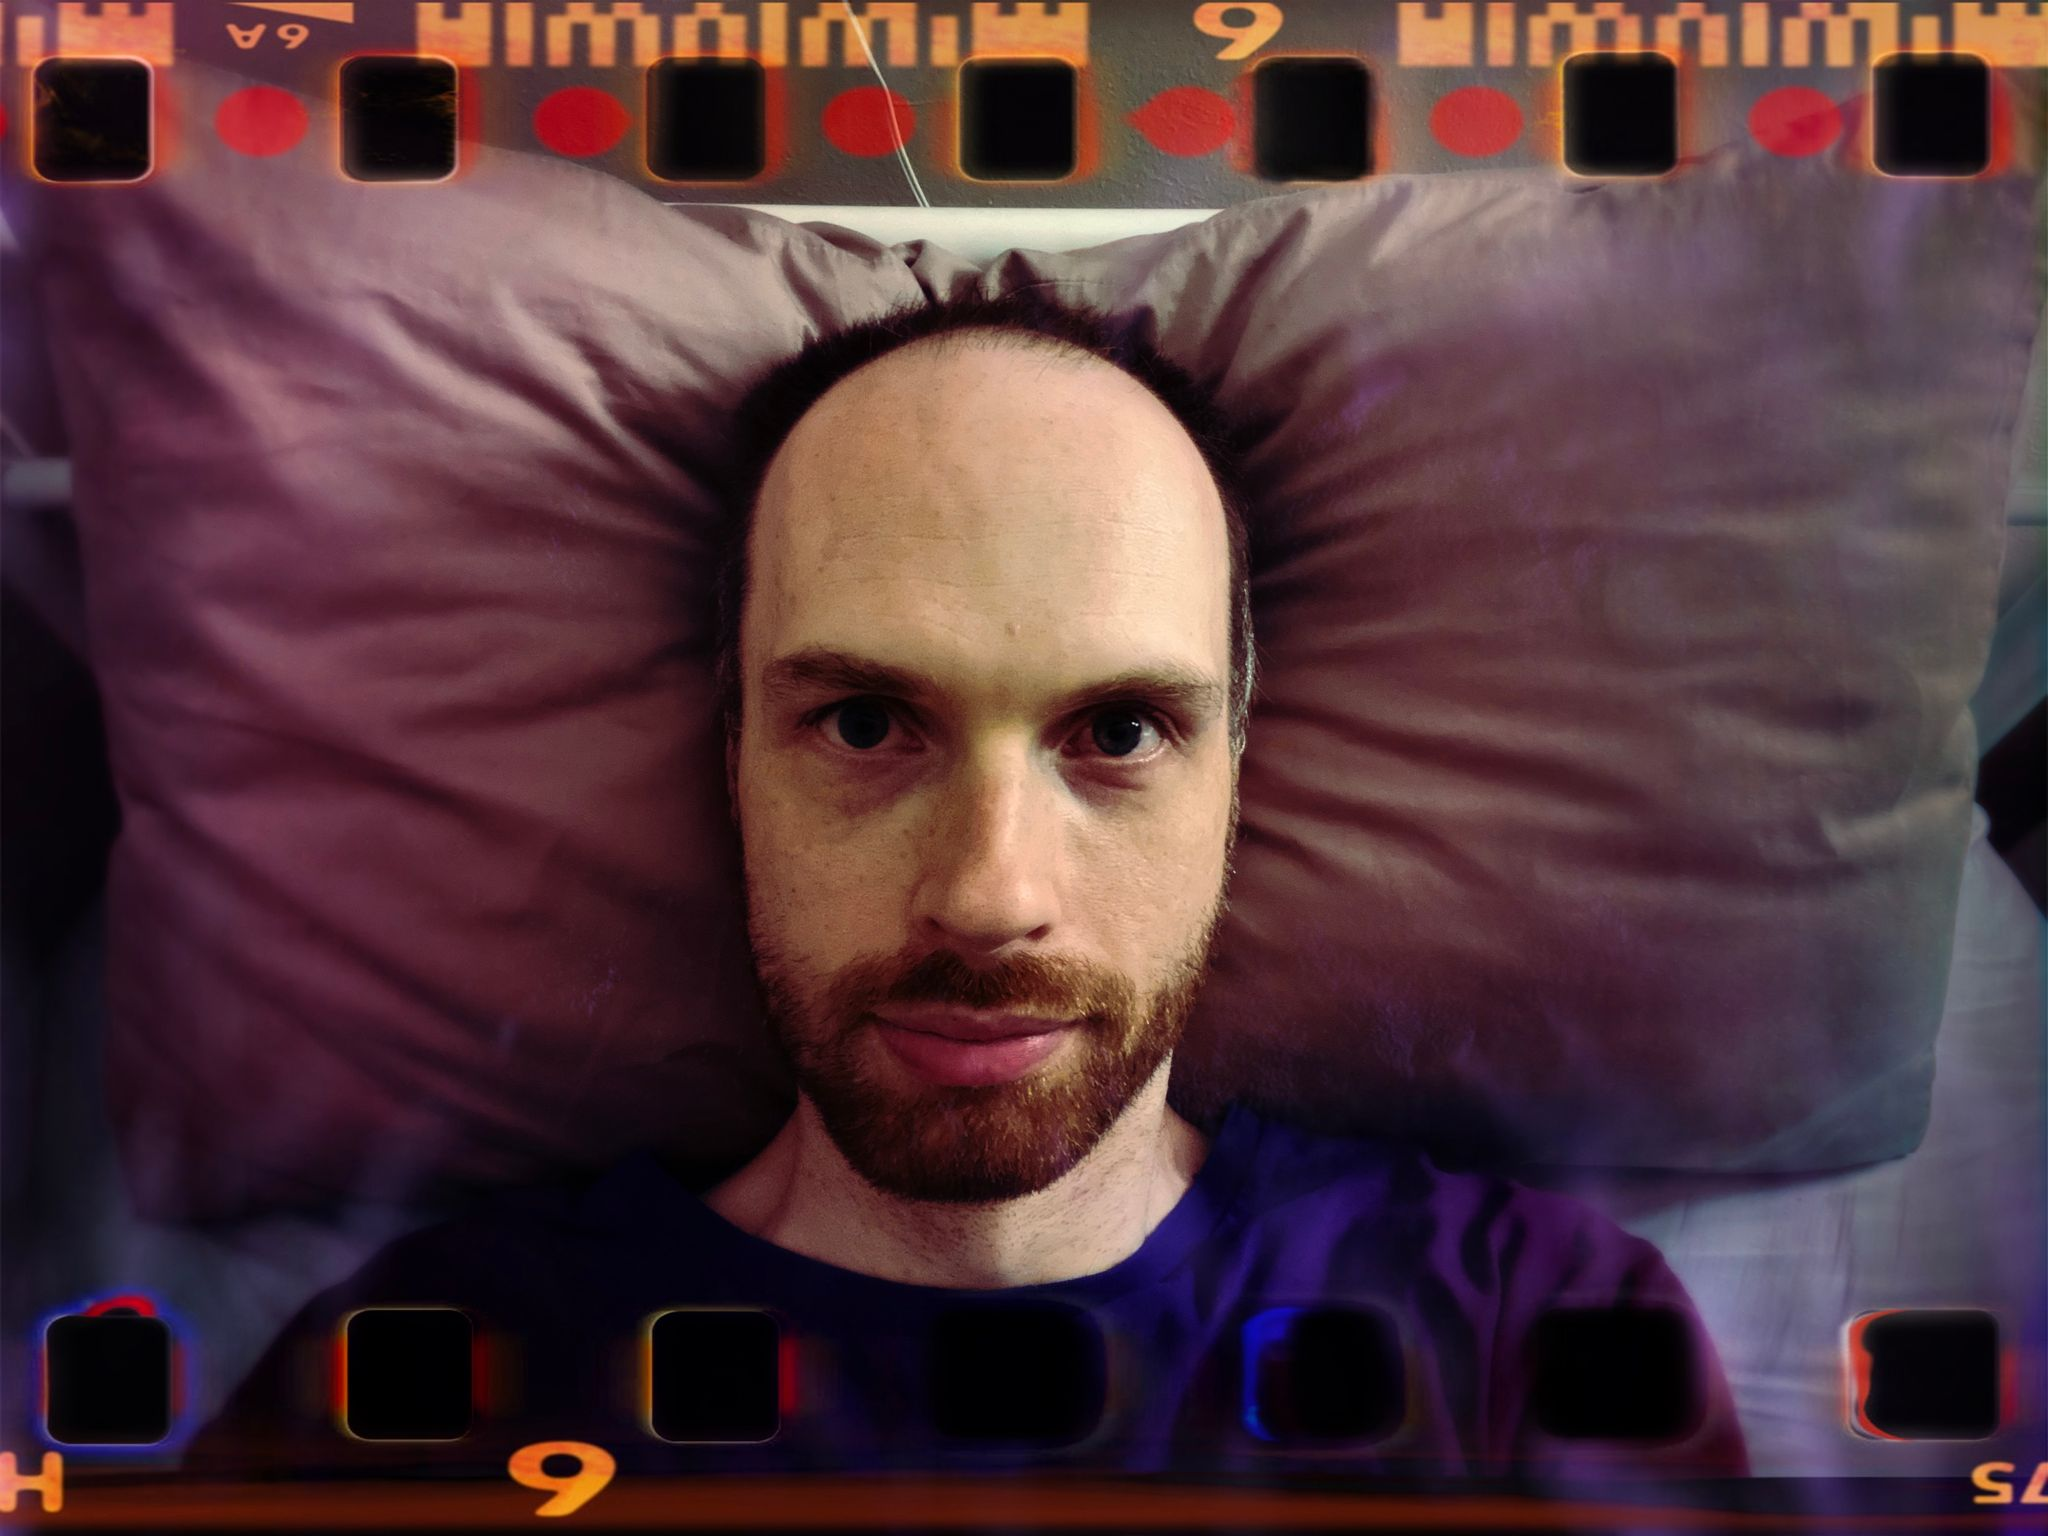 A photo of me, a white man with a short red beard and large expanse of forehead, lying on a pillow. The photo looks like film complete with holes at the top and bottom where the film would be pulled along by the loader.